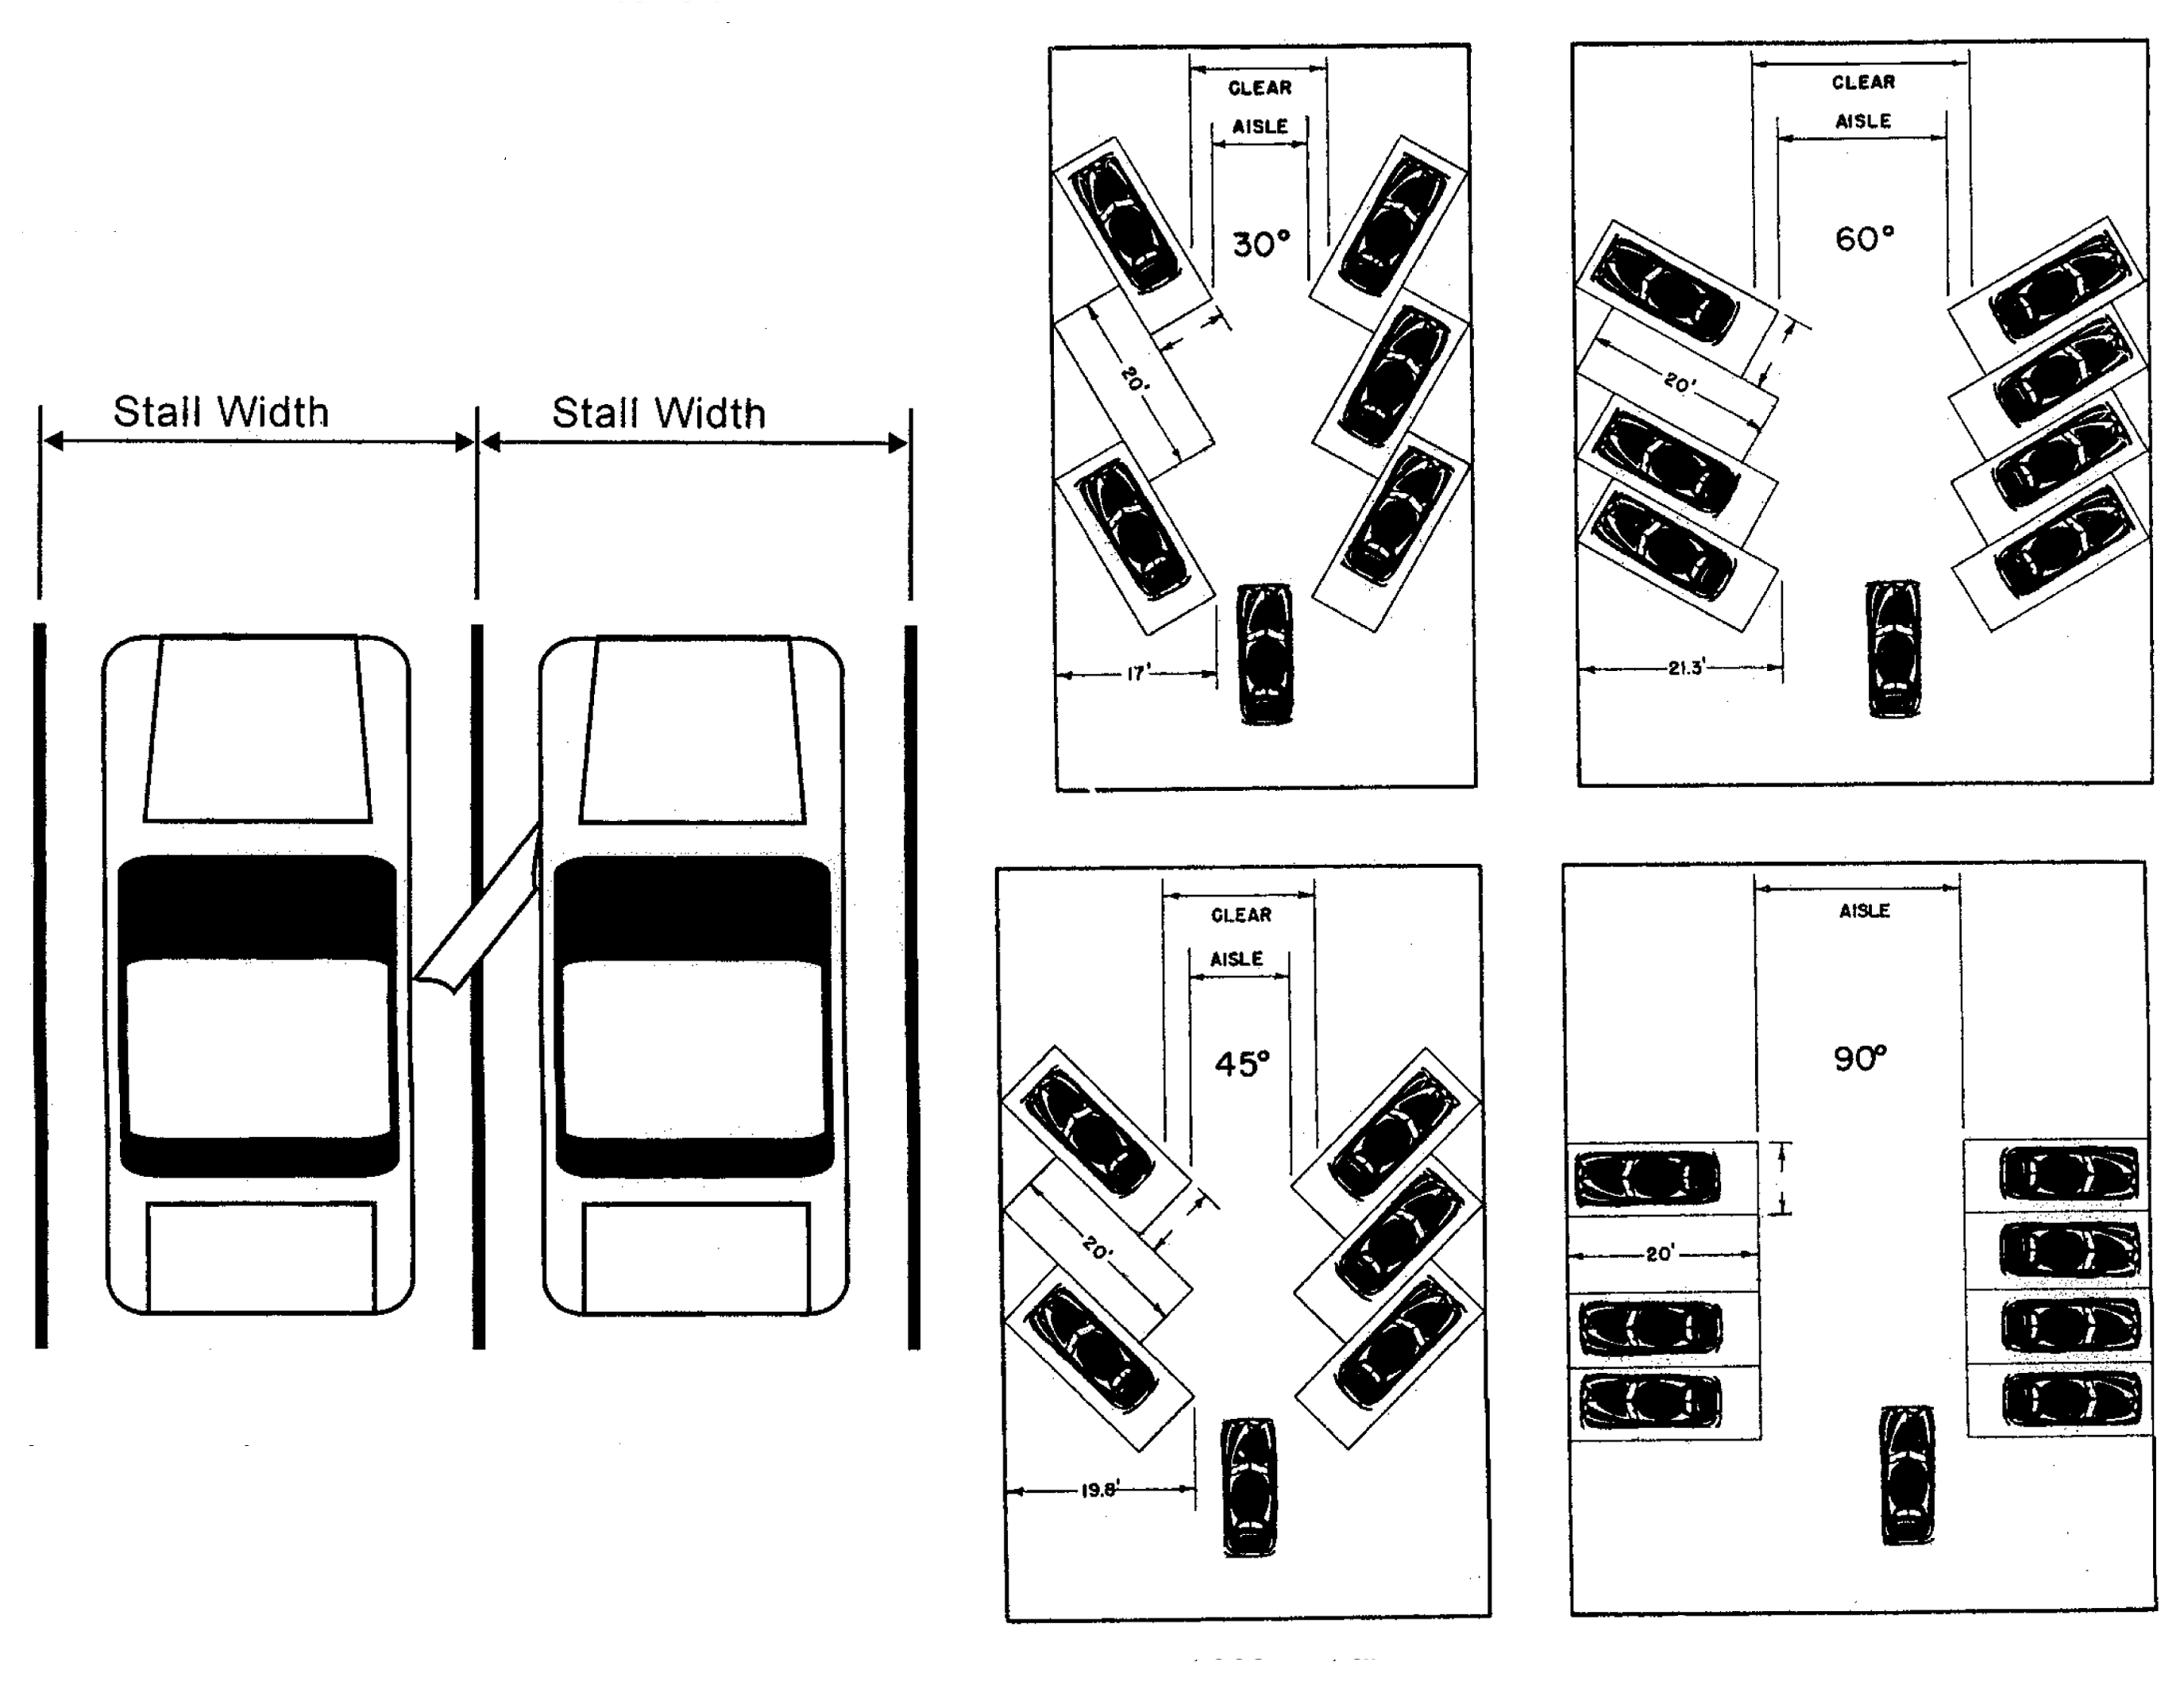 21 12 Parking Space And Aisle Design Specifications Article 21